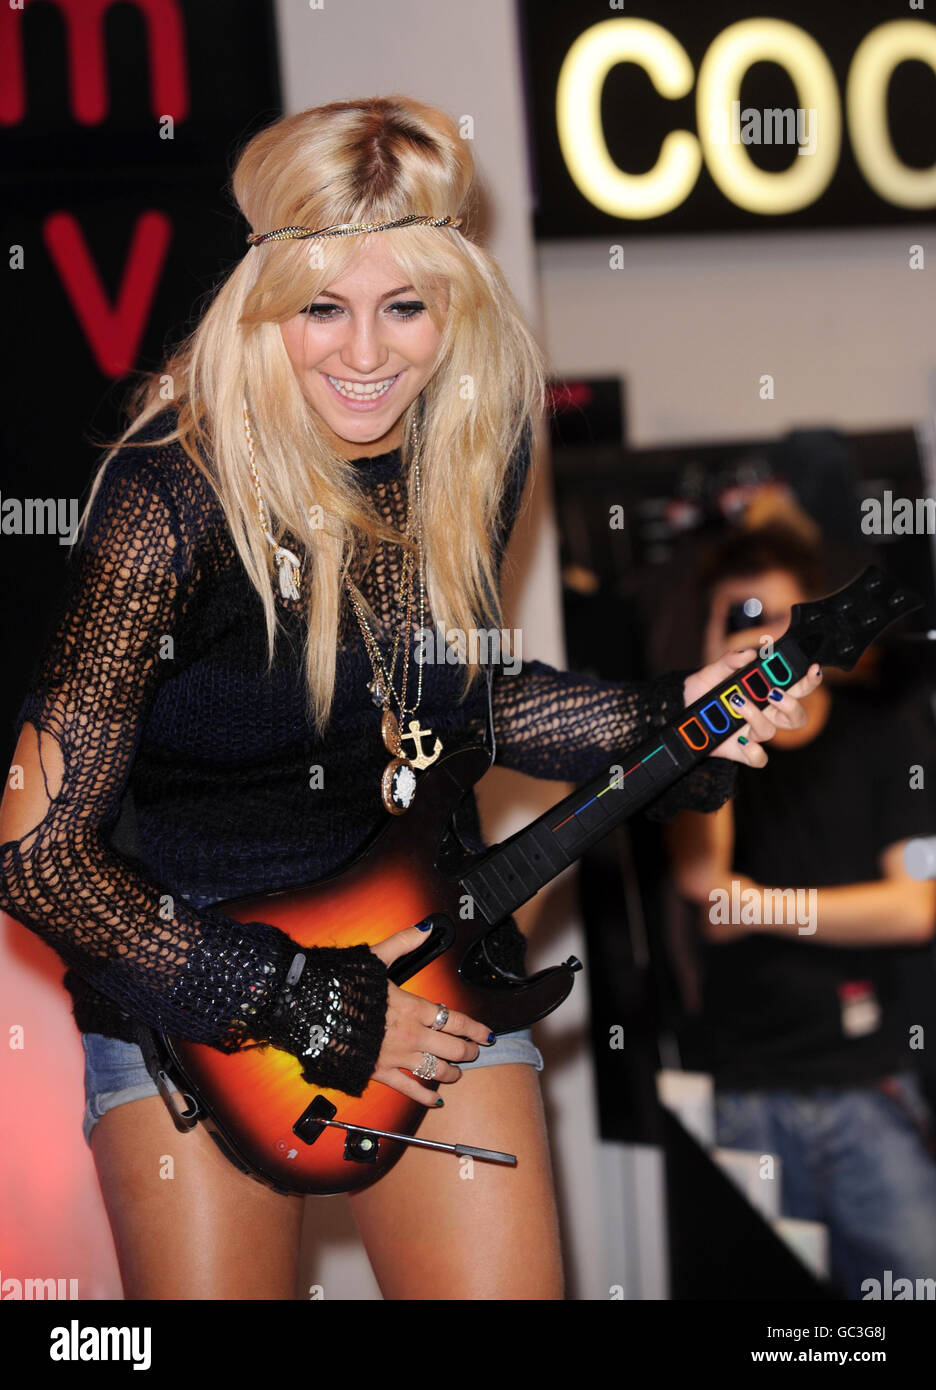 Pixie Lott Guitar Hero 5 photocall - London - Stock Image